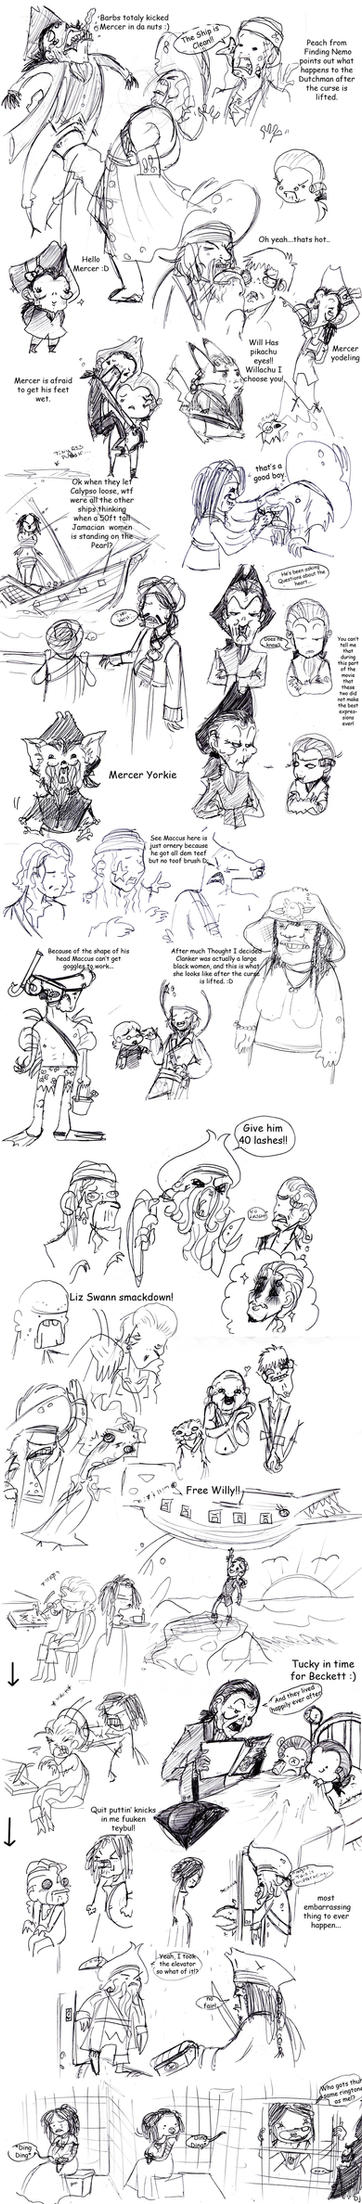 POTC: AWE sketch dump 5 by OhSadface